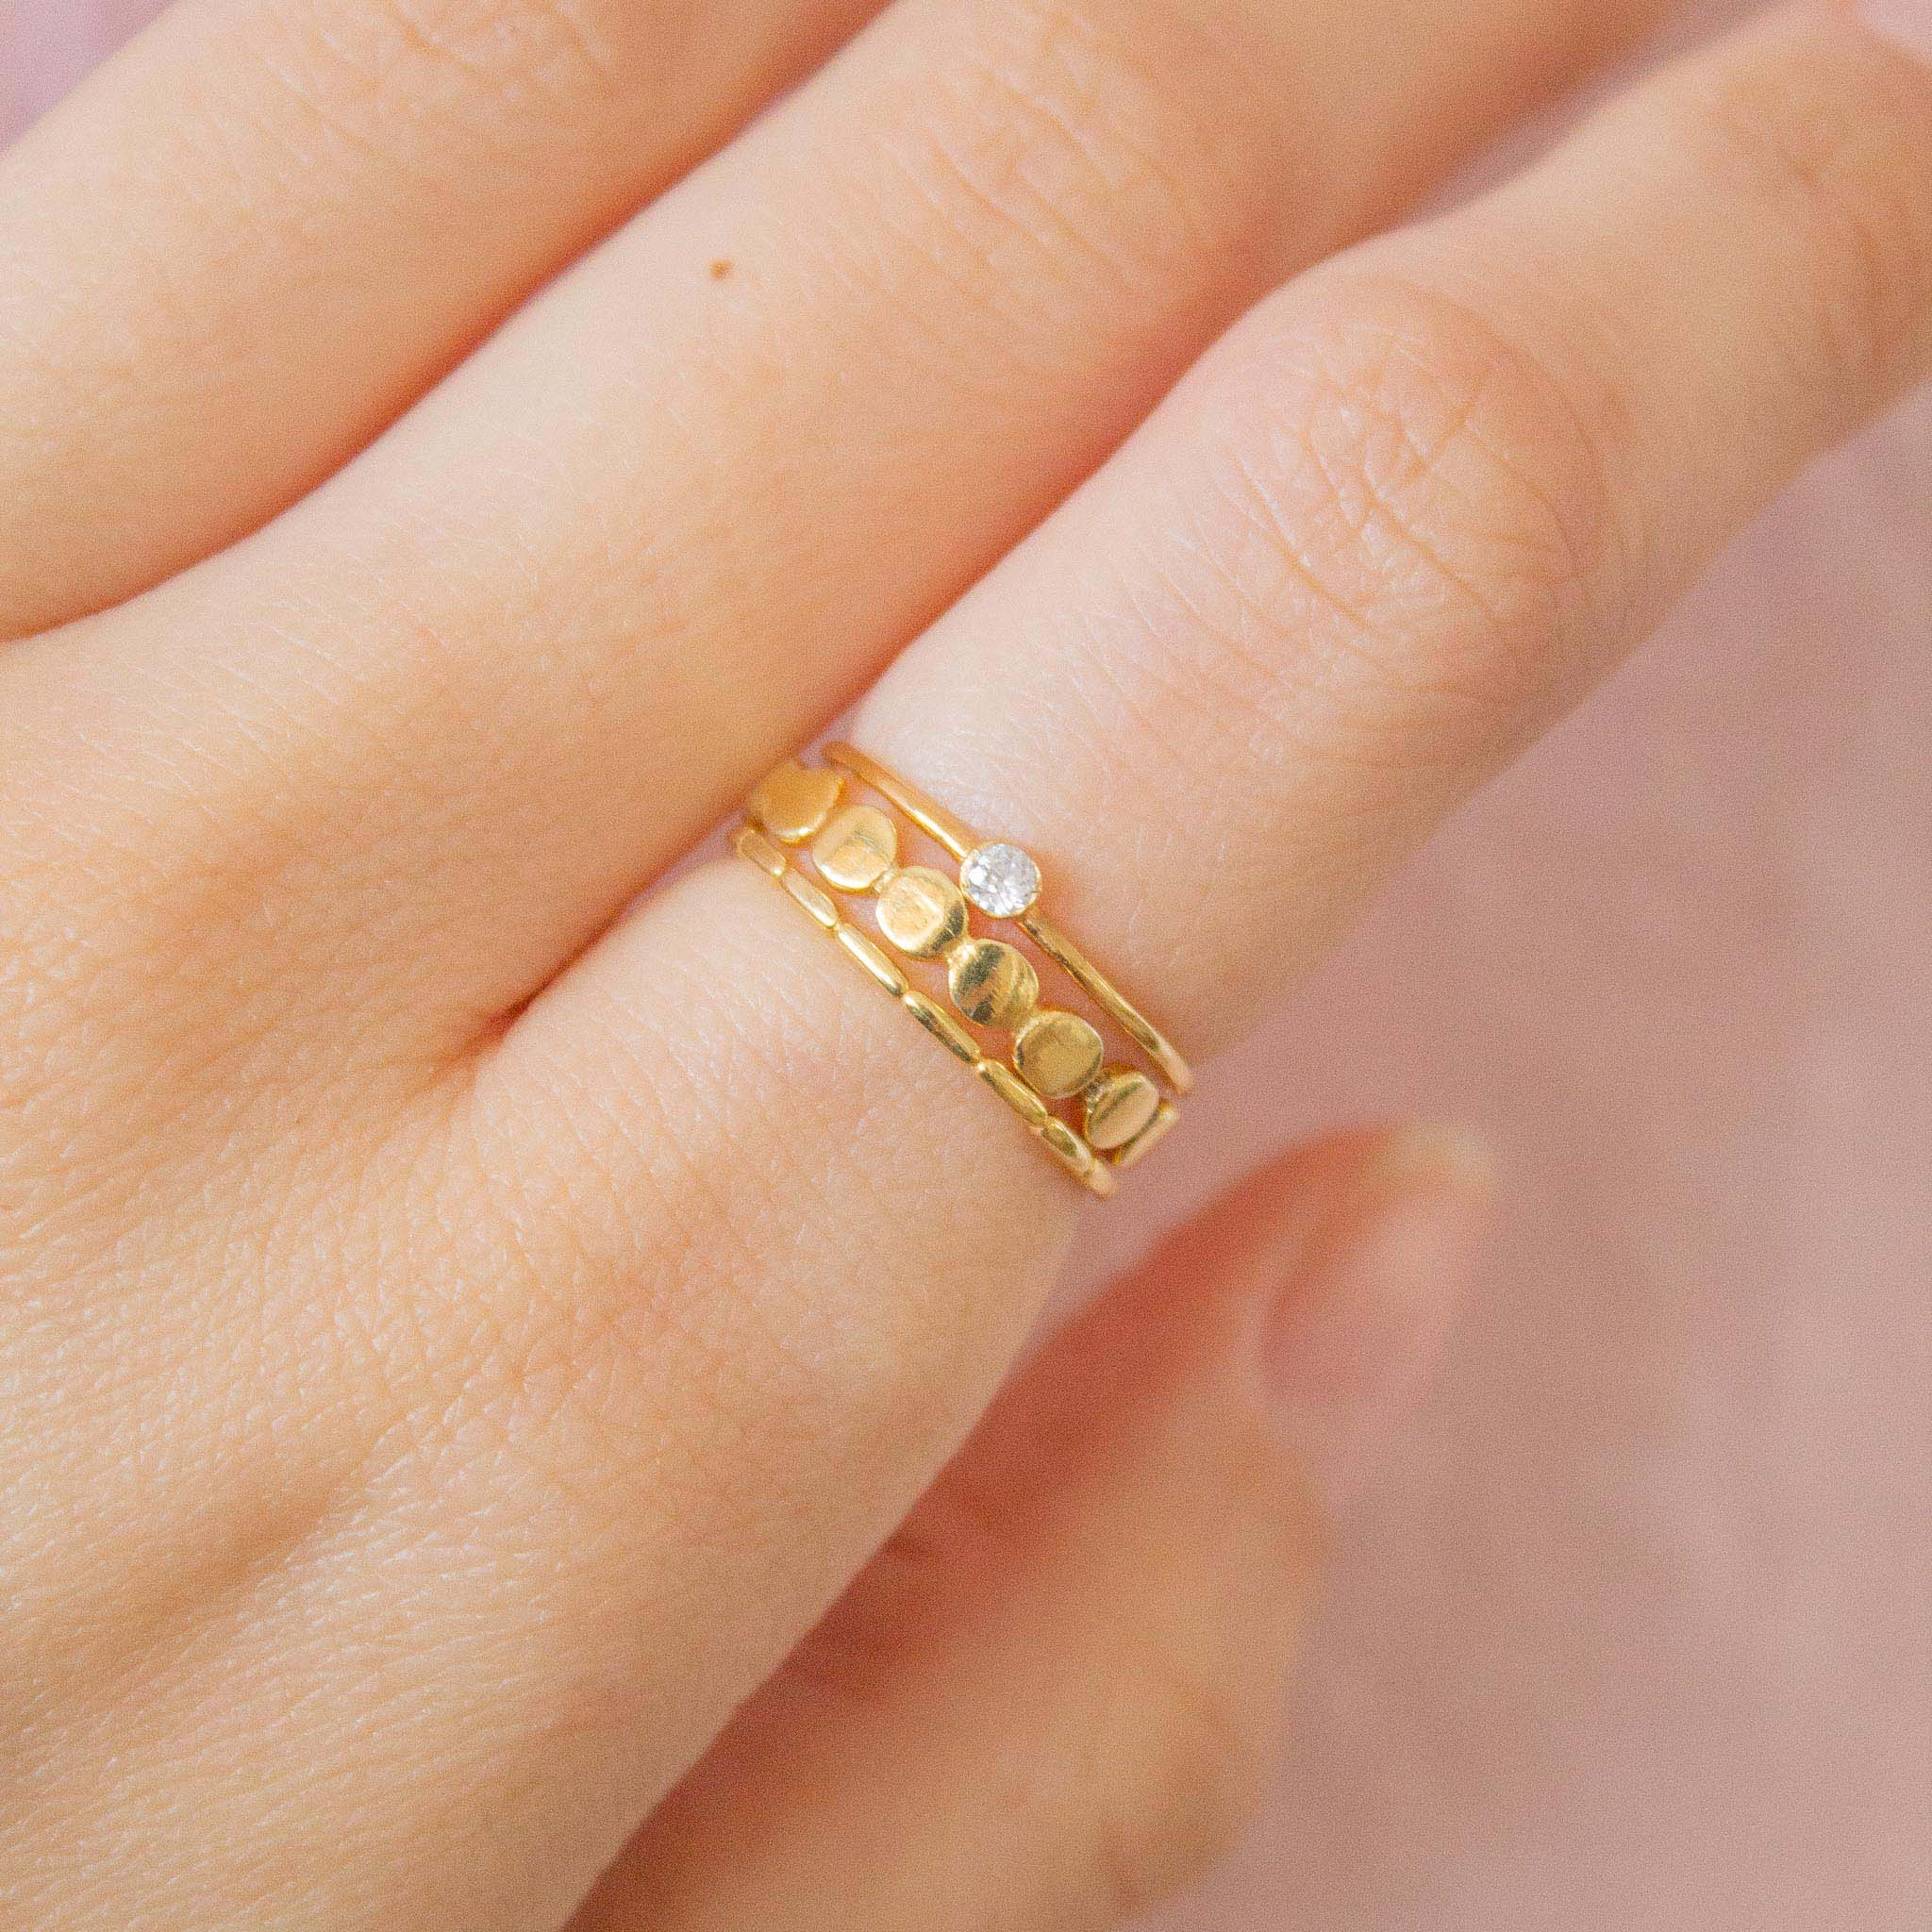 Solitaire ring stacking ideas